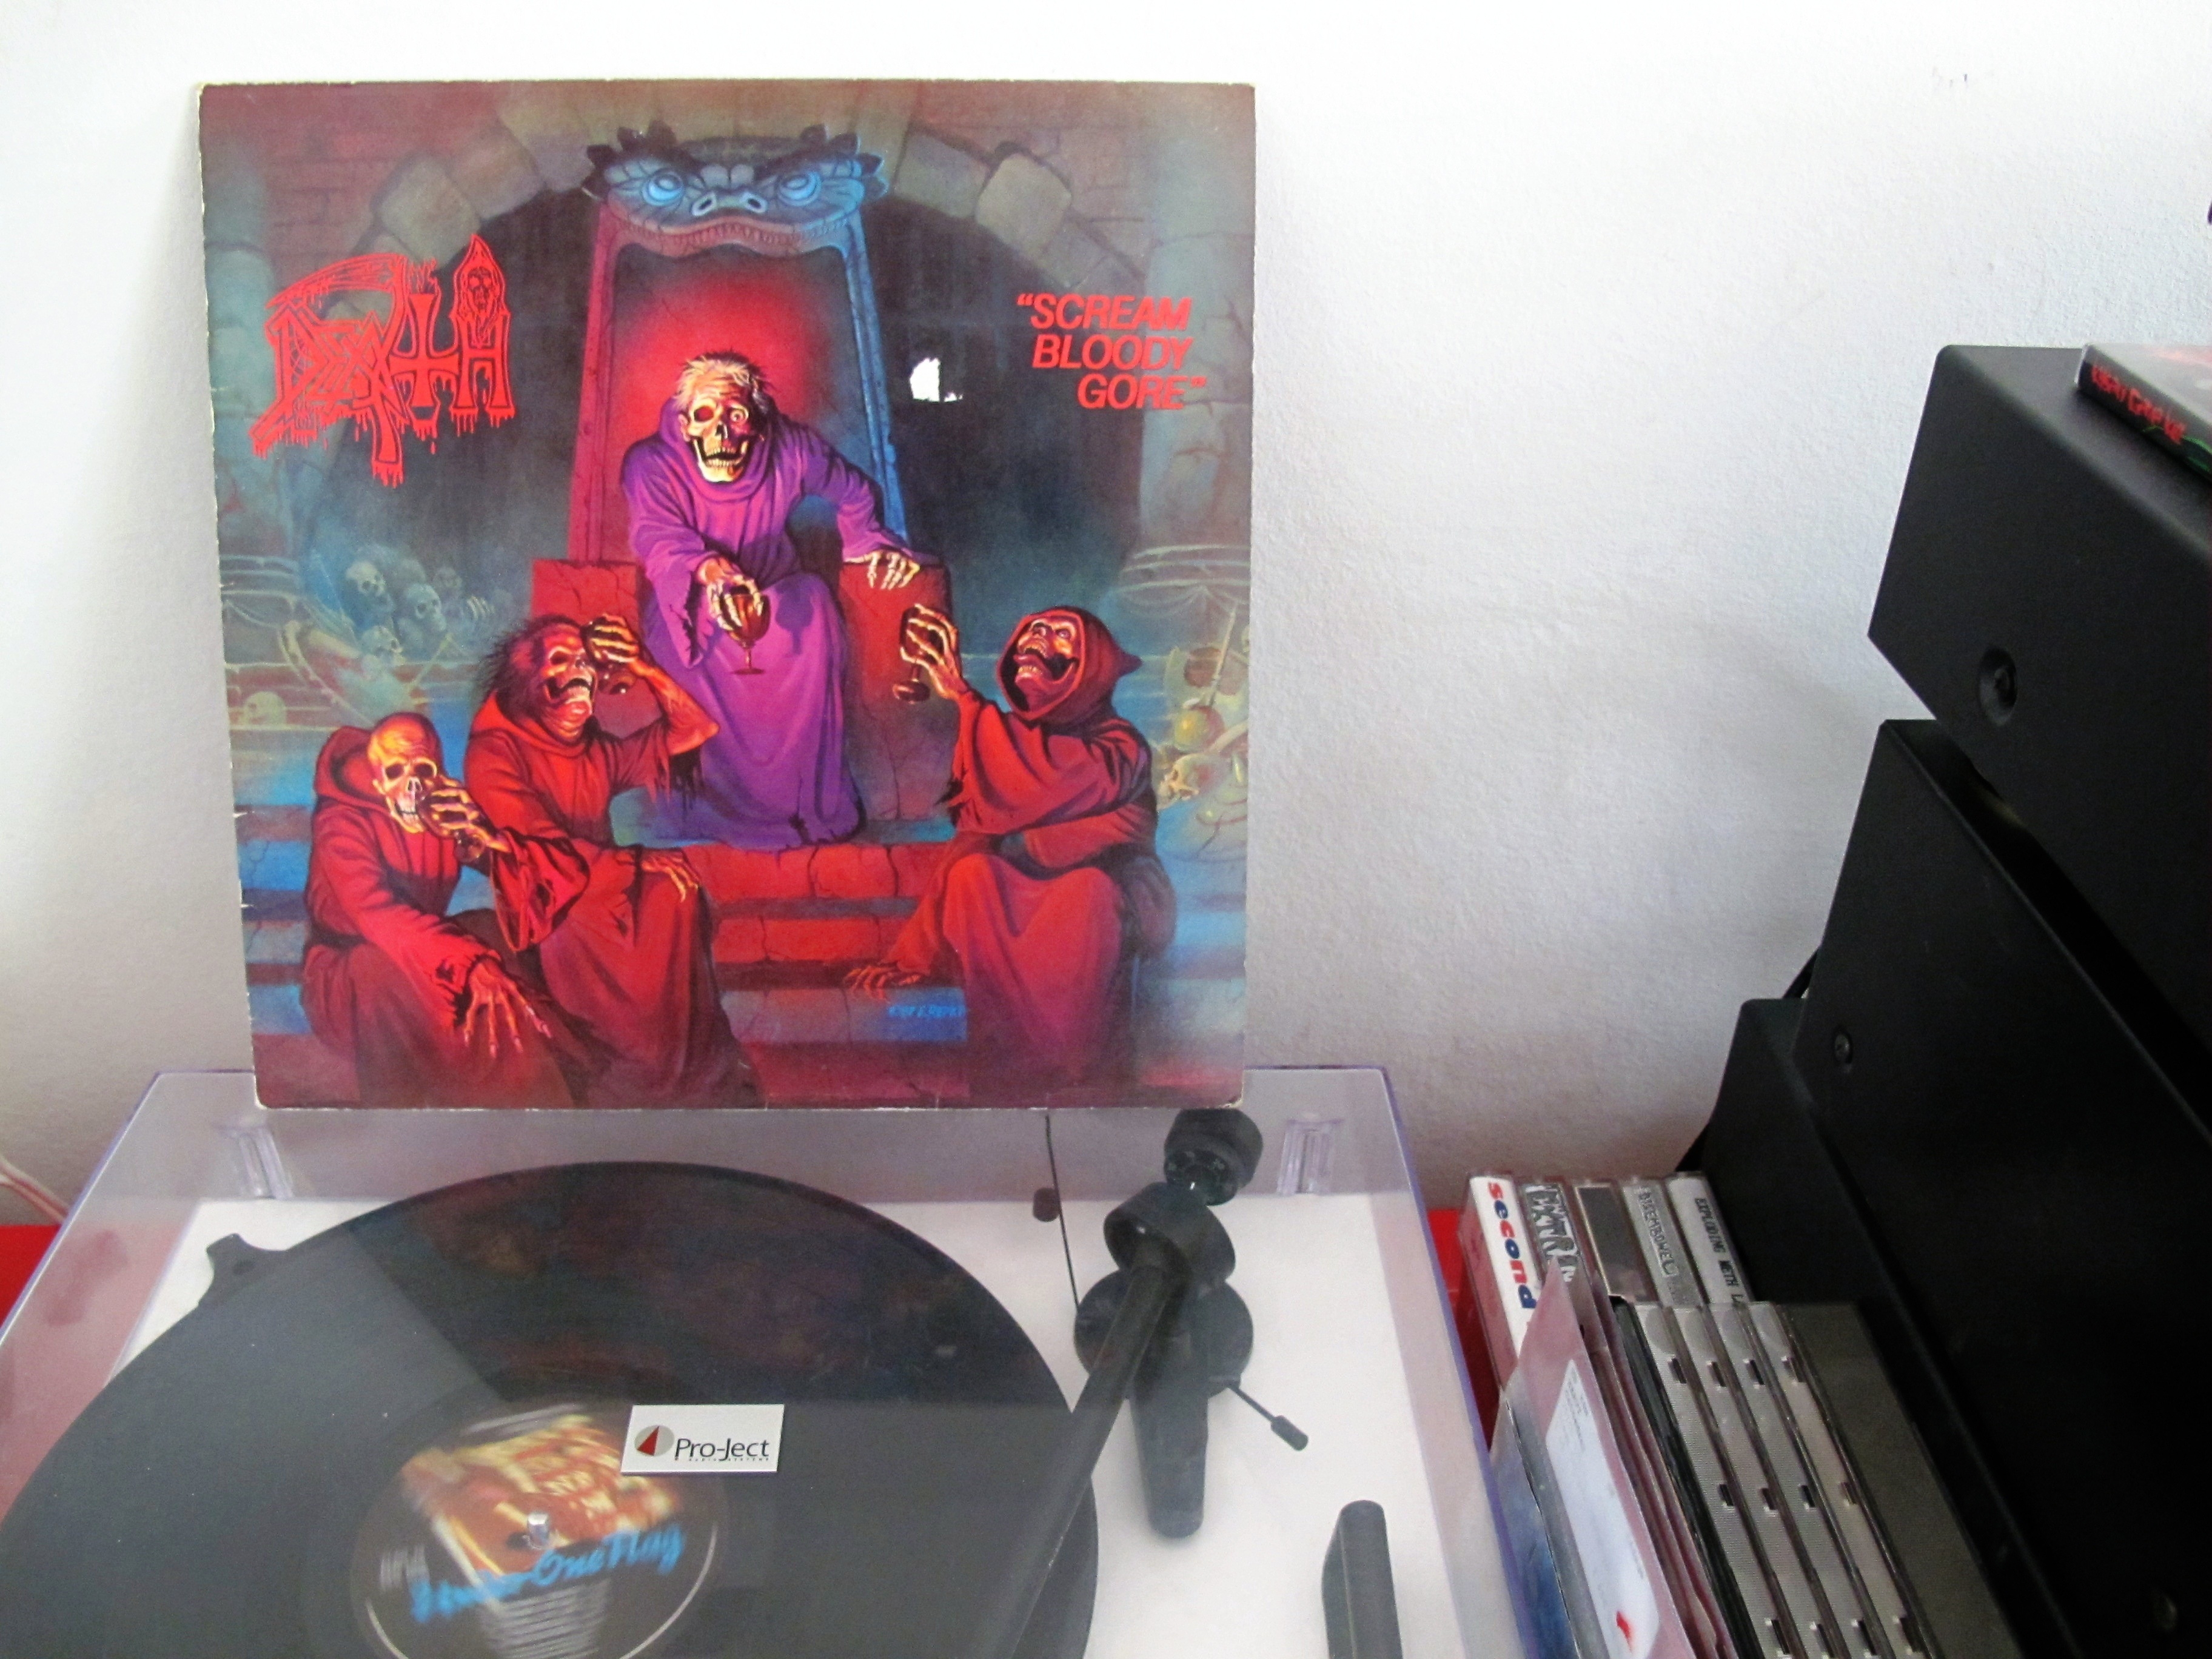 Death Scream Bloody Gore Now Playing Records